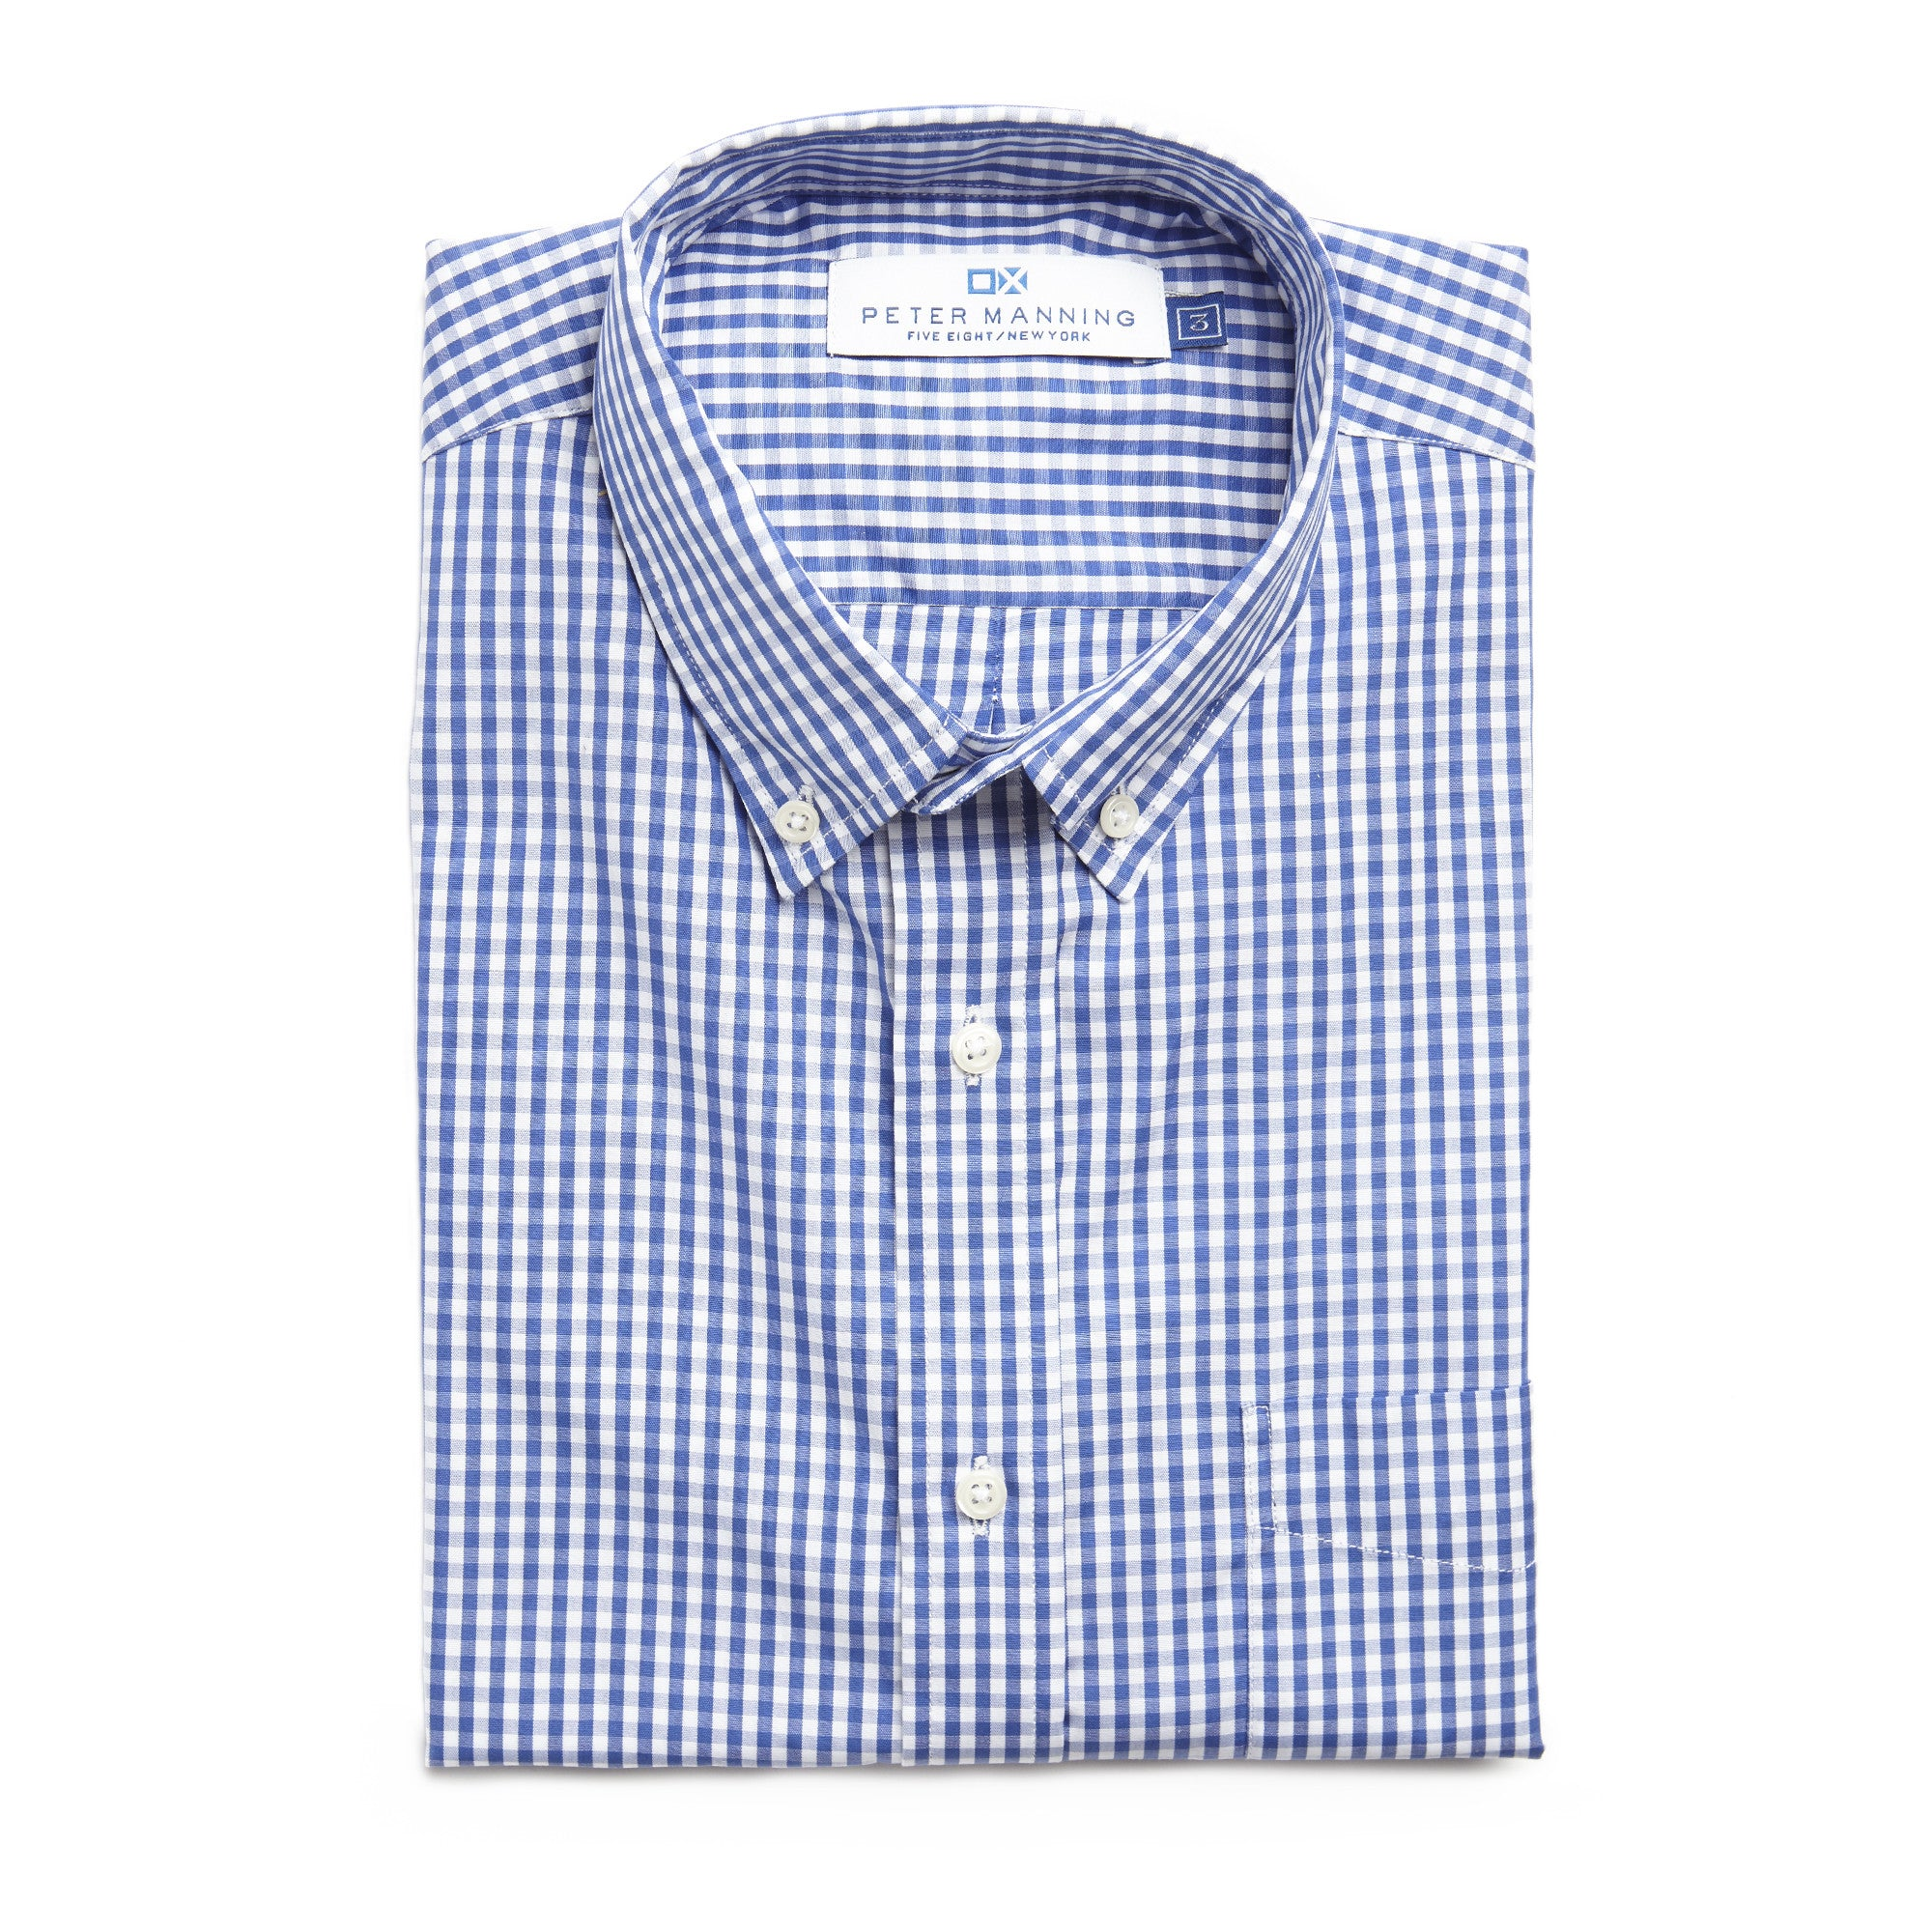 Everyday Shirt - Navy Gingham